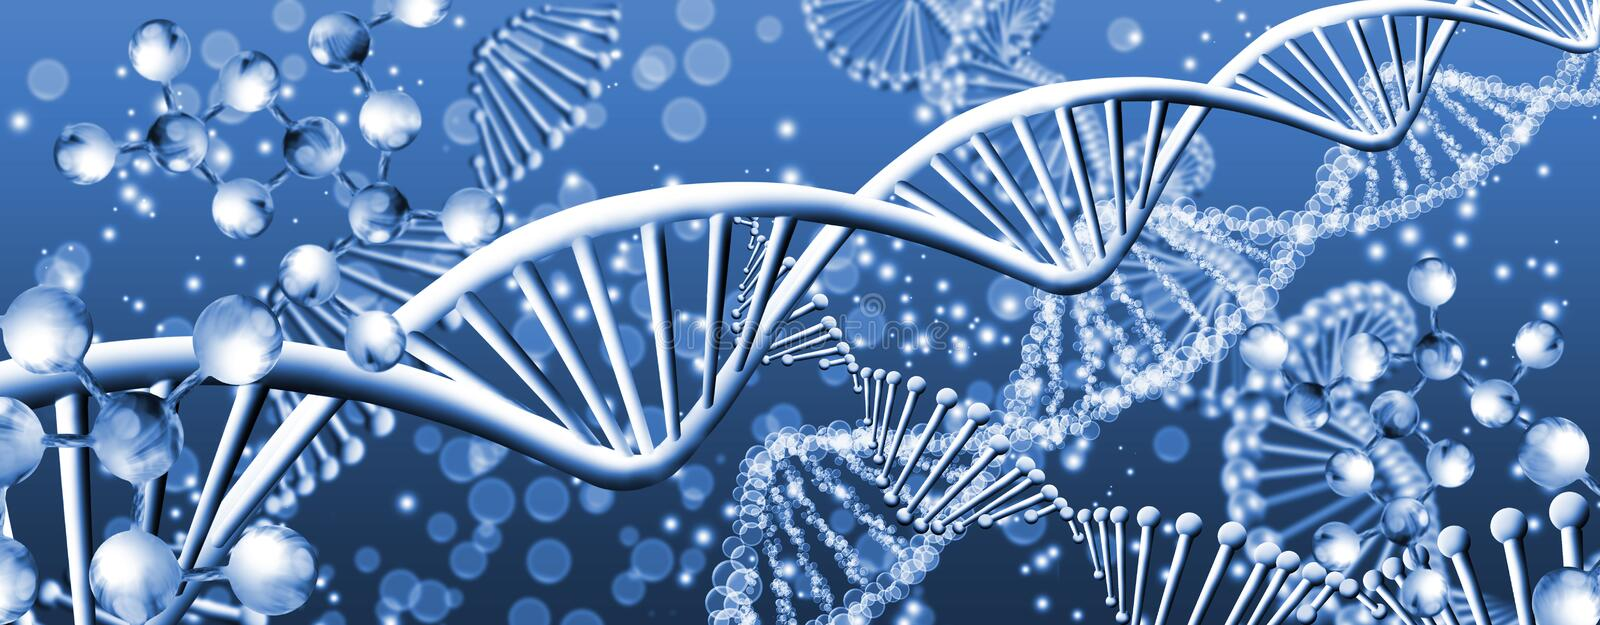 Abstract image of dna chain close up. 3D illustration vector illustration